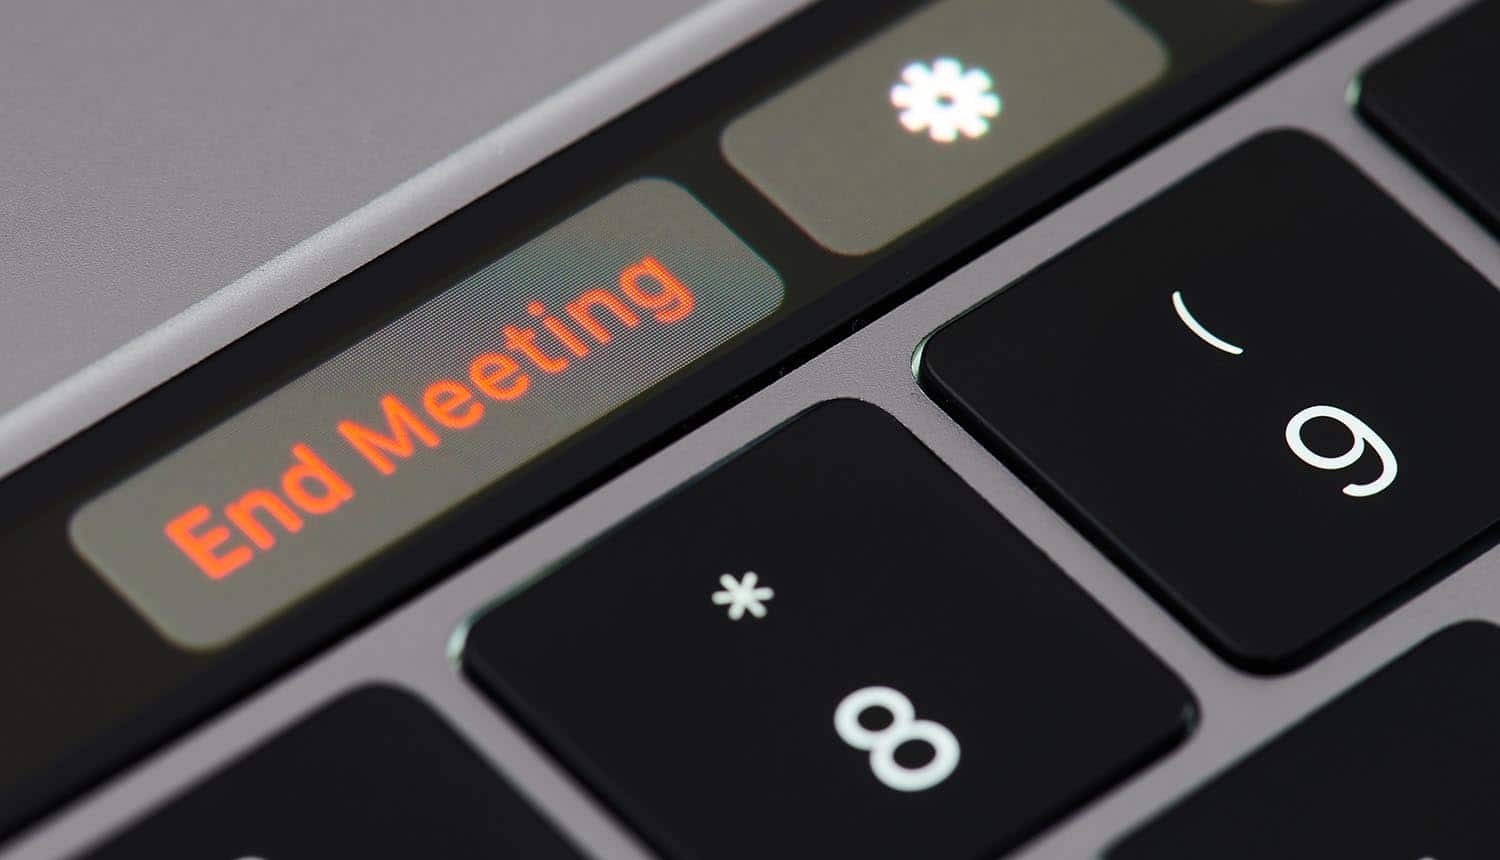 End meeting button on keyboard showing more and more organizations deciding to stop using Zoom as security concerns continue to pile up